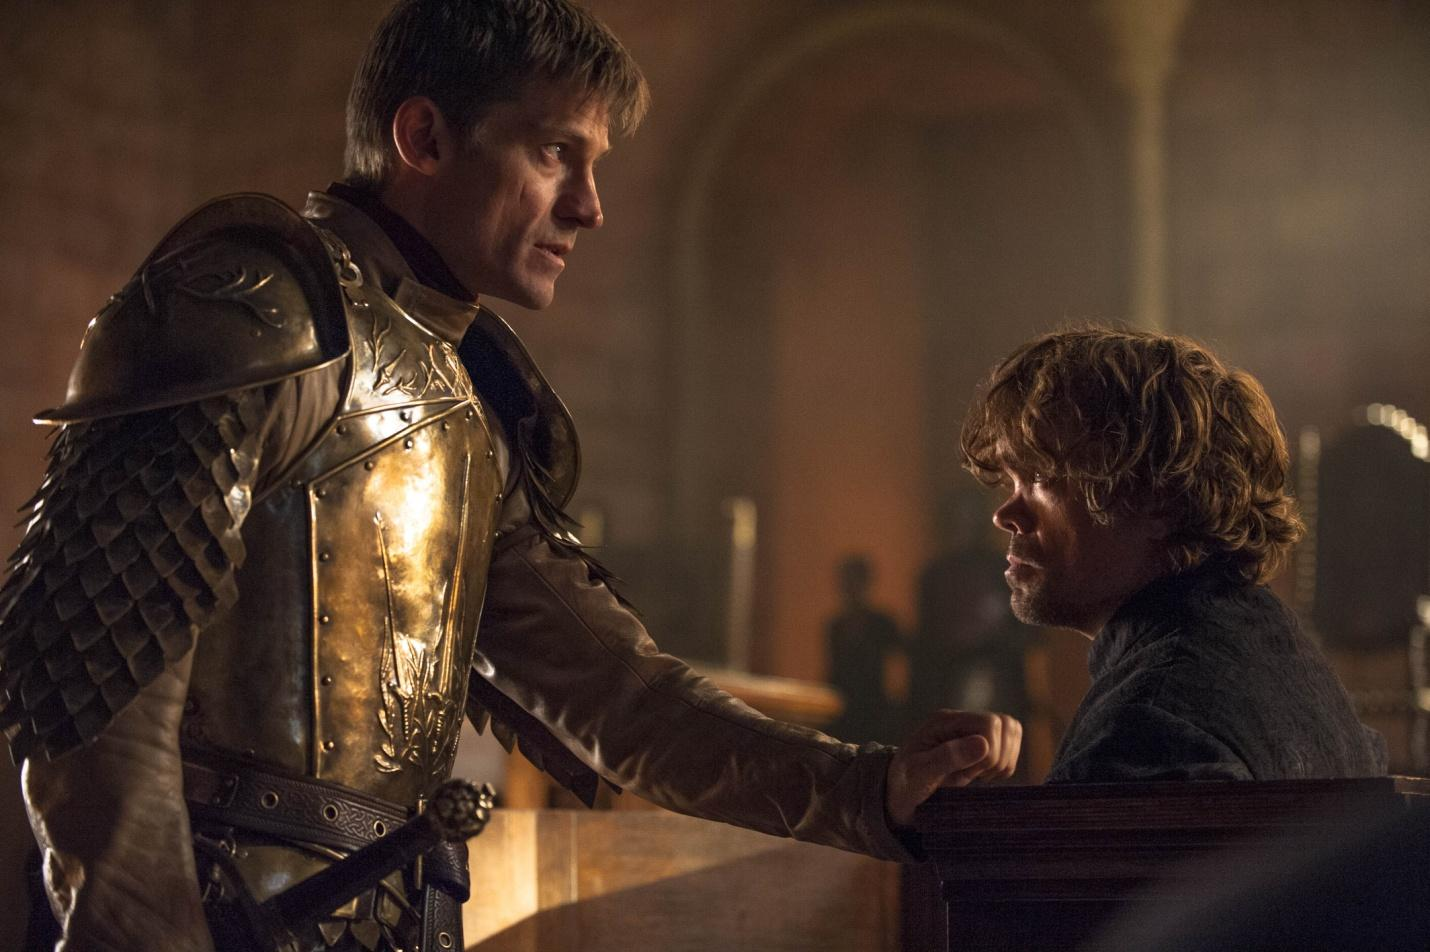 C:\Users\user\Desktop\Reacho\pics\Tyrion-and-Jaime-Lannister-tyrion-lannister-37085288-4256-2832.jpg